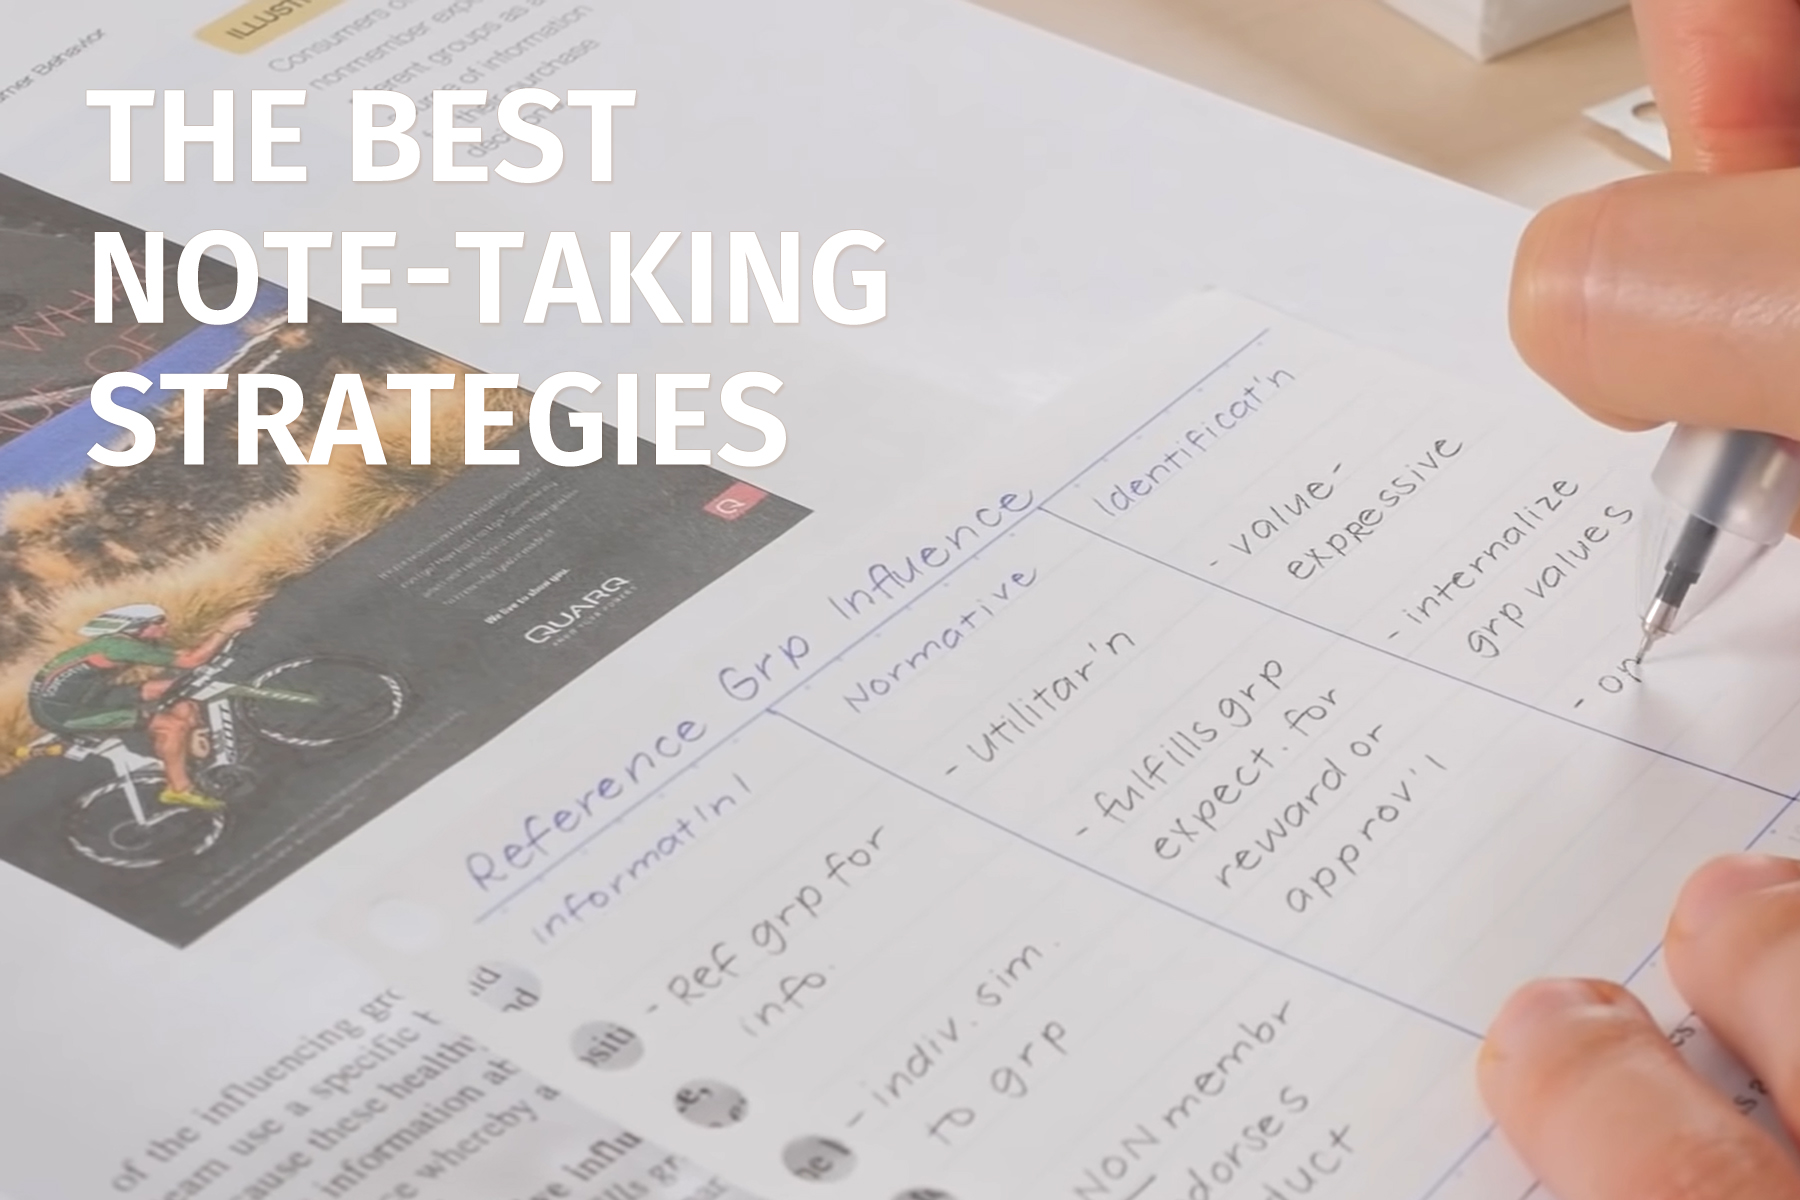 Note-Taking Tips for Students